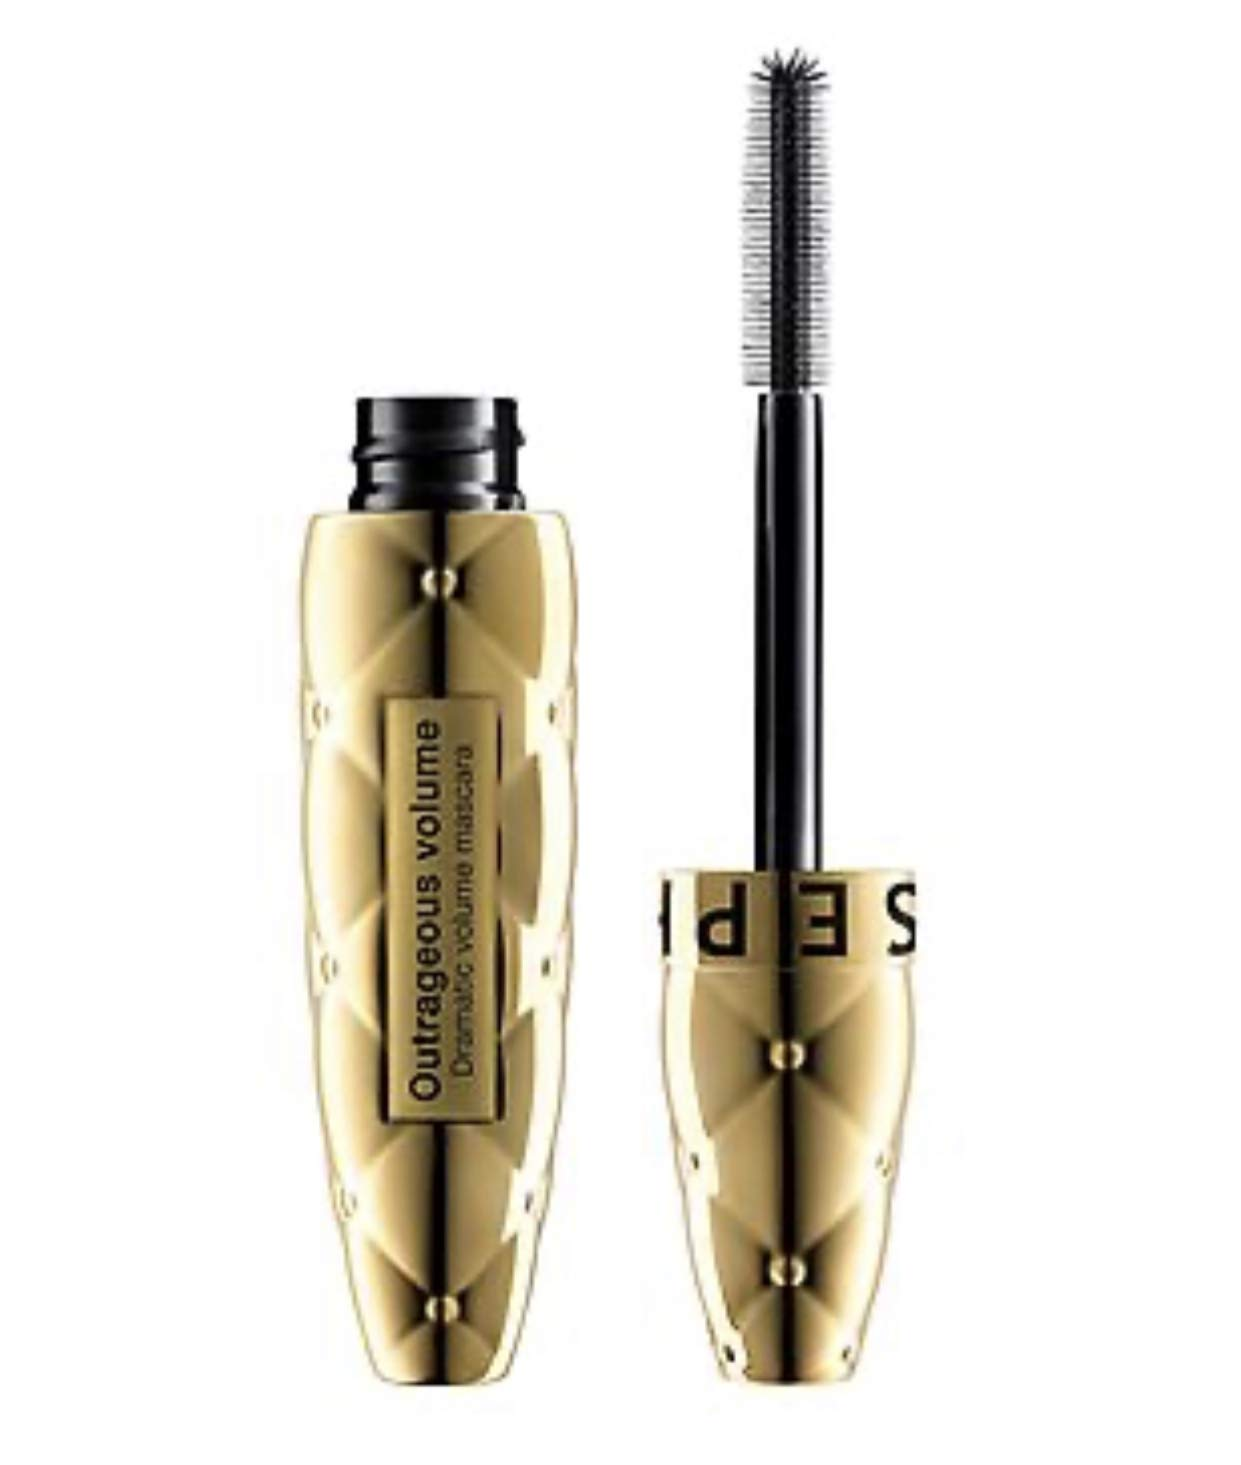 SEPHORA COLLECTION Outrageous Volume Max 75% OFF Ultra Popular brand Mascara Black